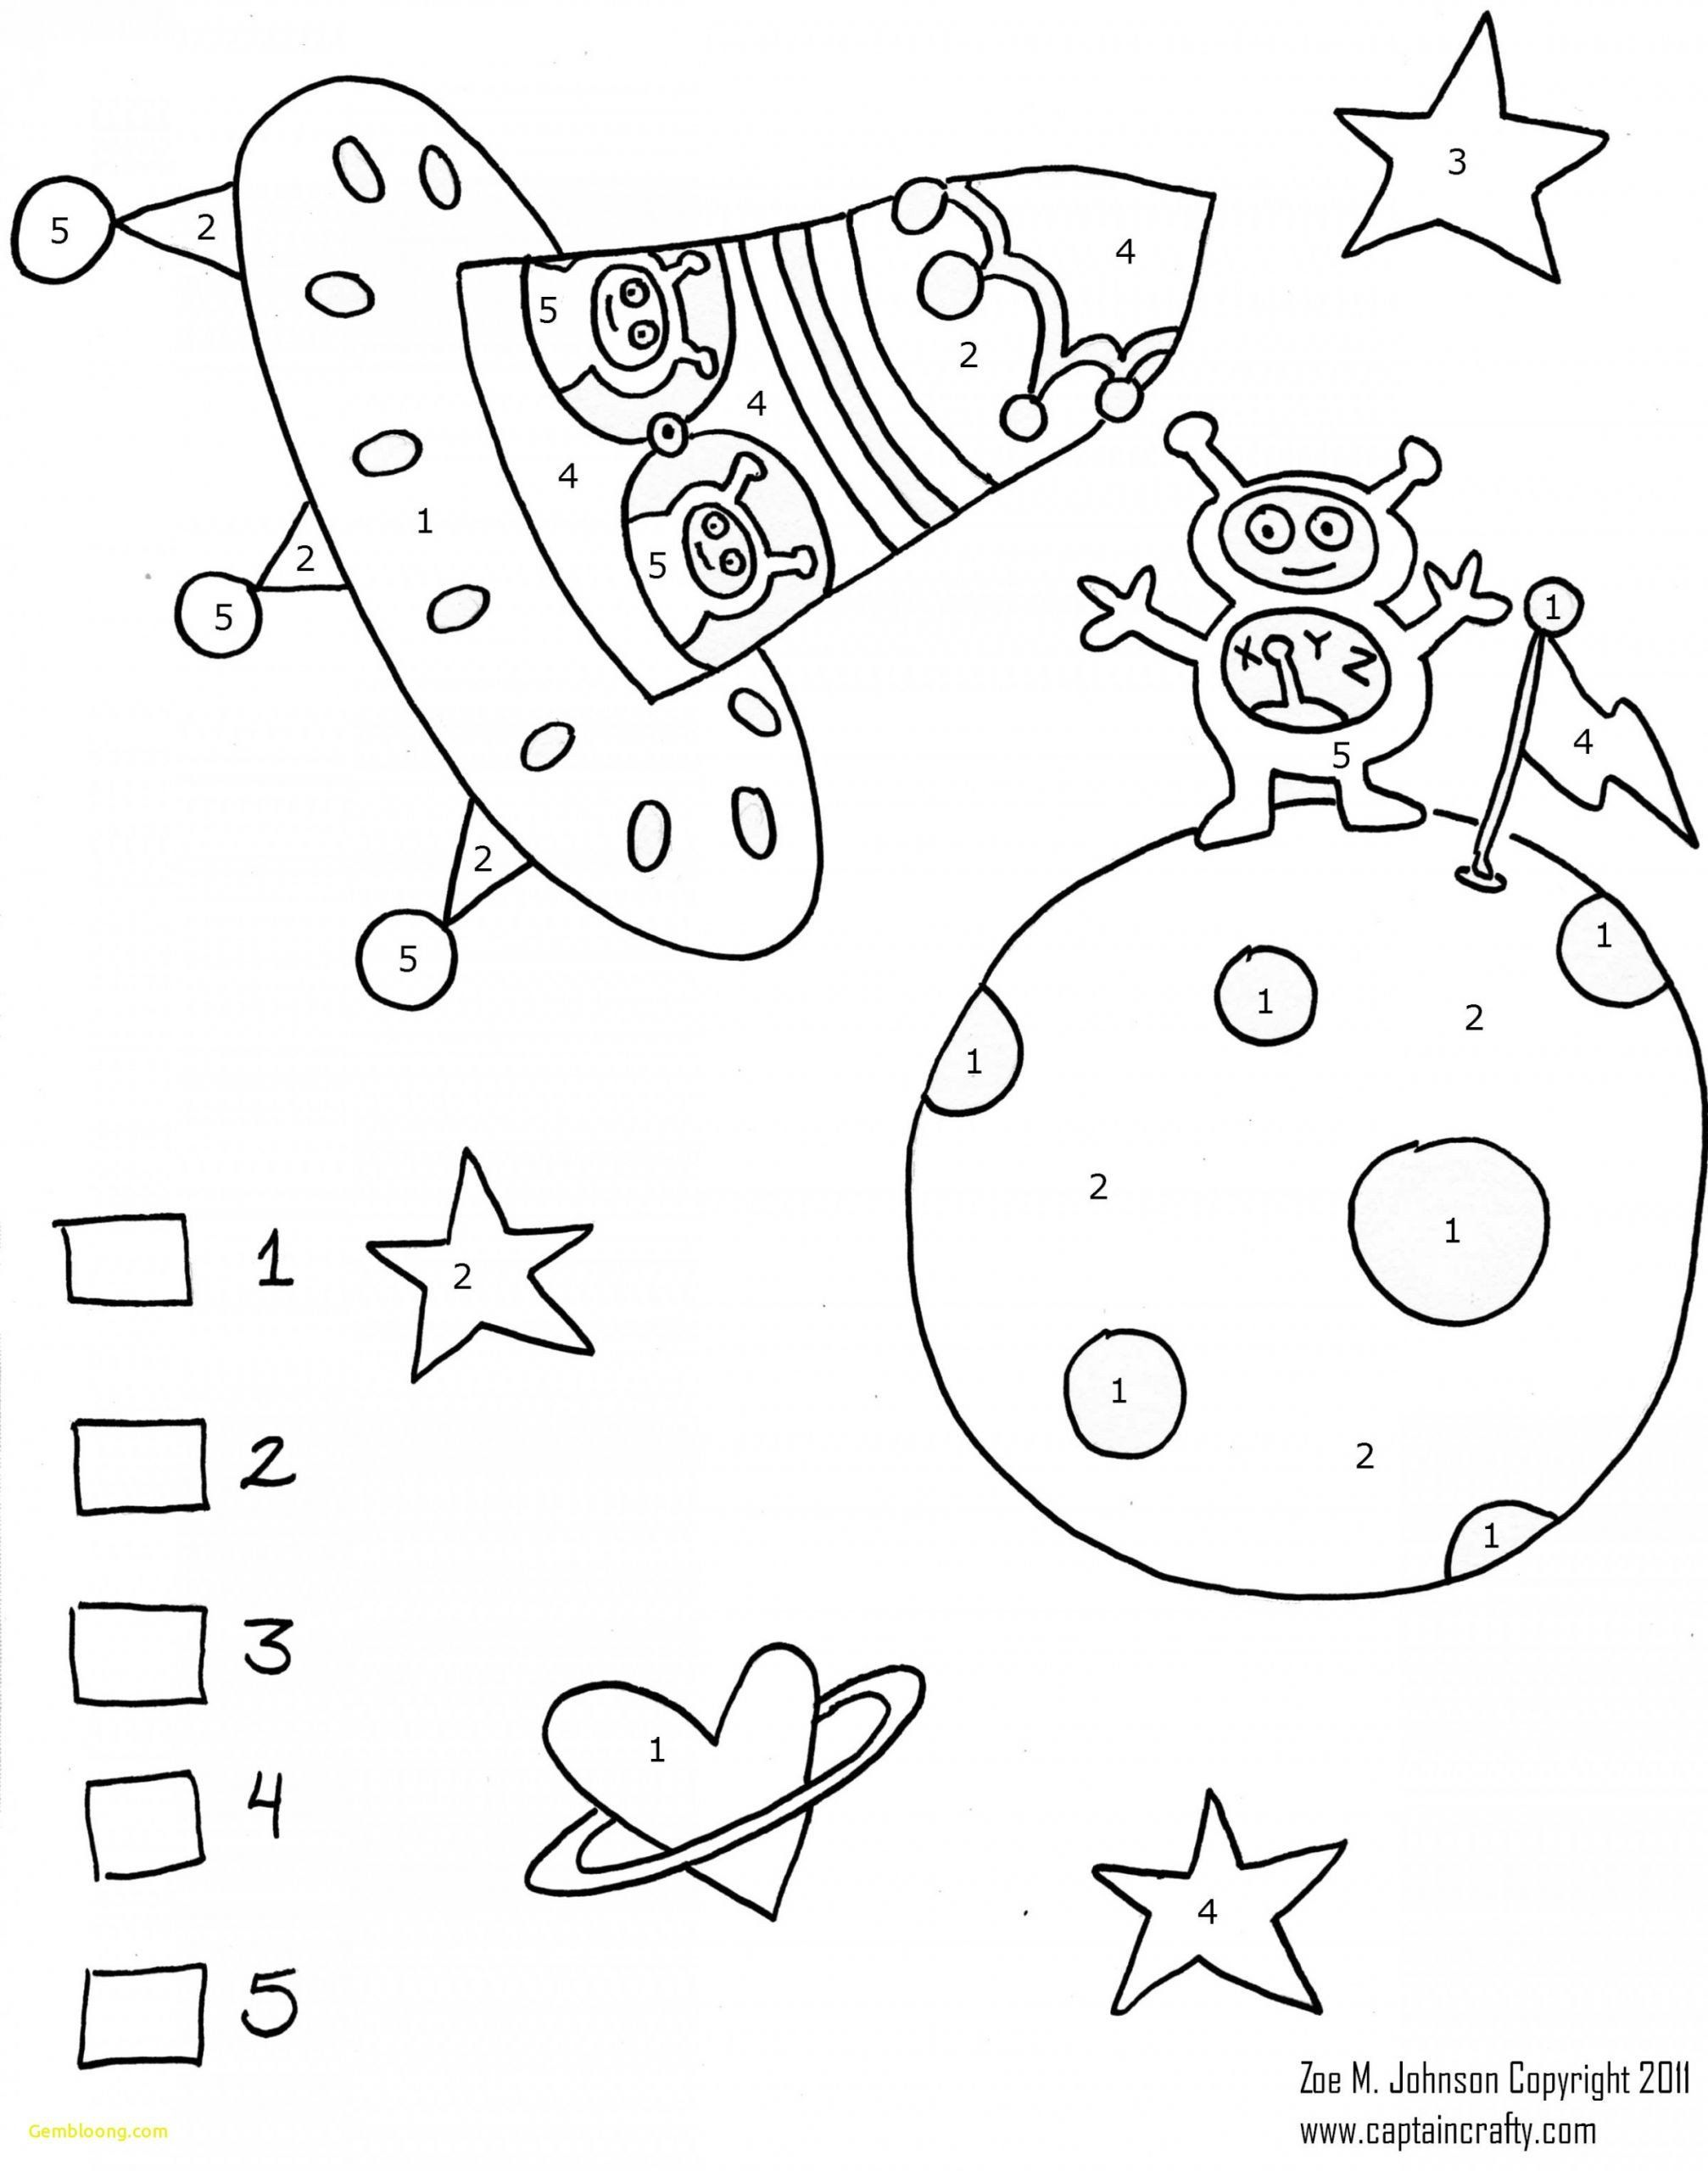 Cute Alien Coloring Pages Coloring Pages Color By Number